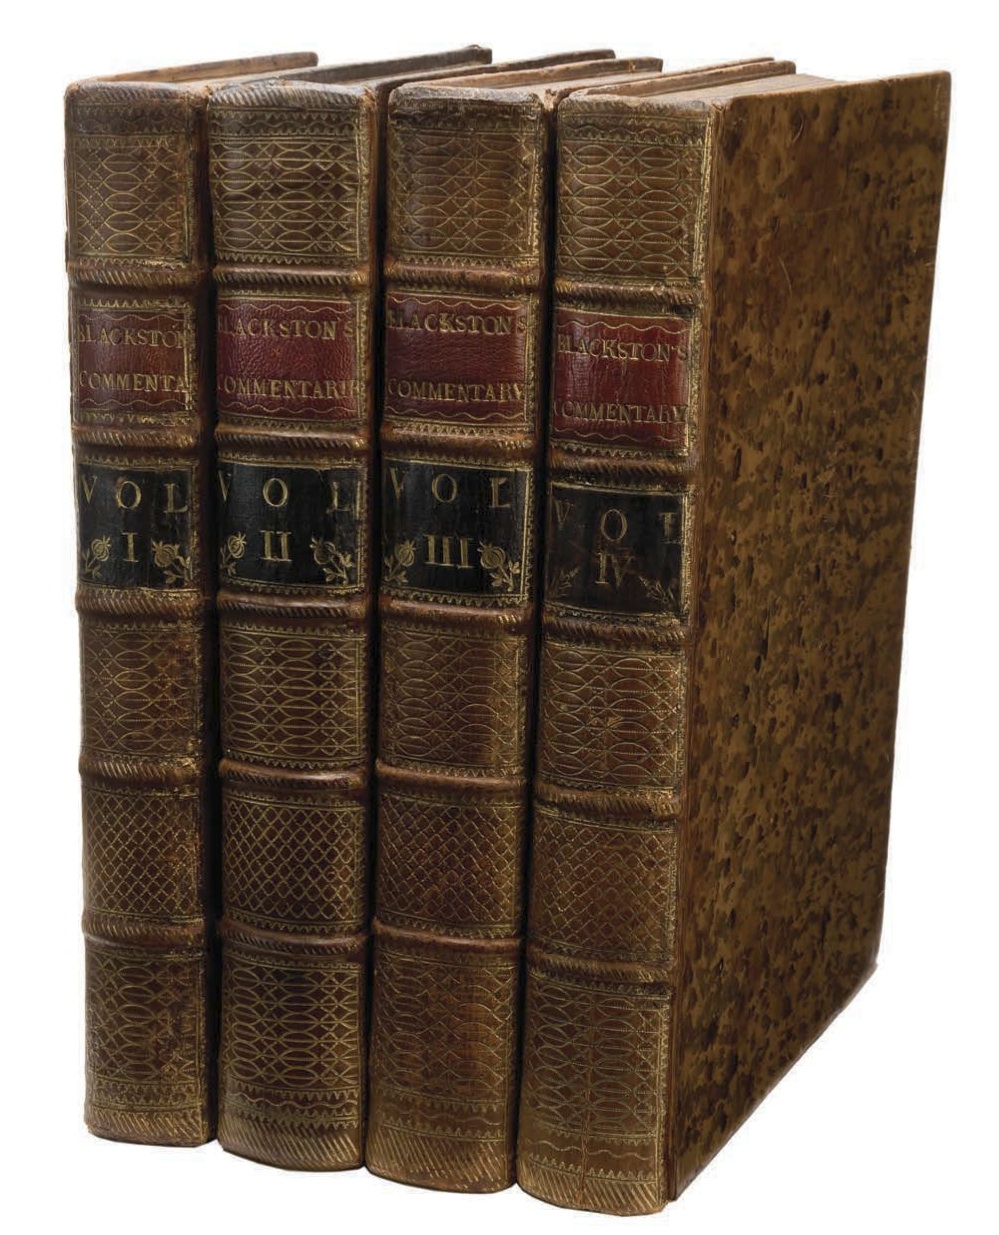 Commentaries on the Laws of England -The 19th Century Rare Book and